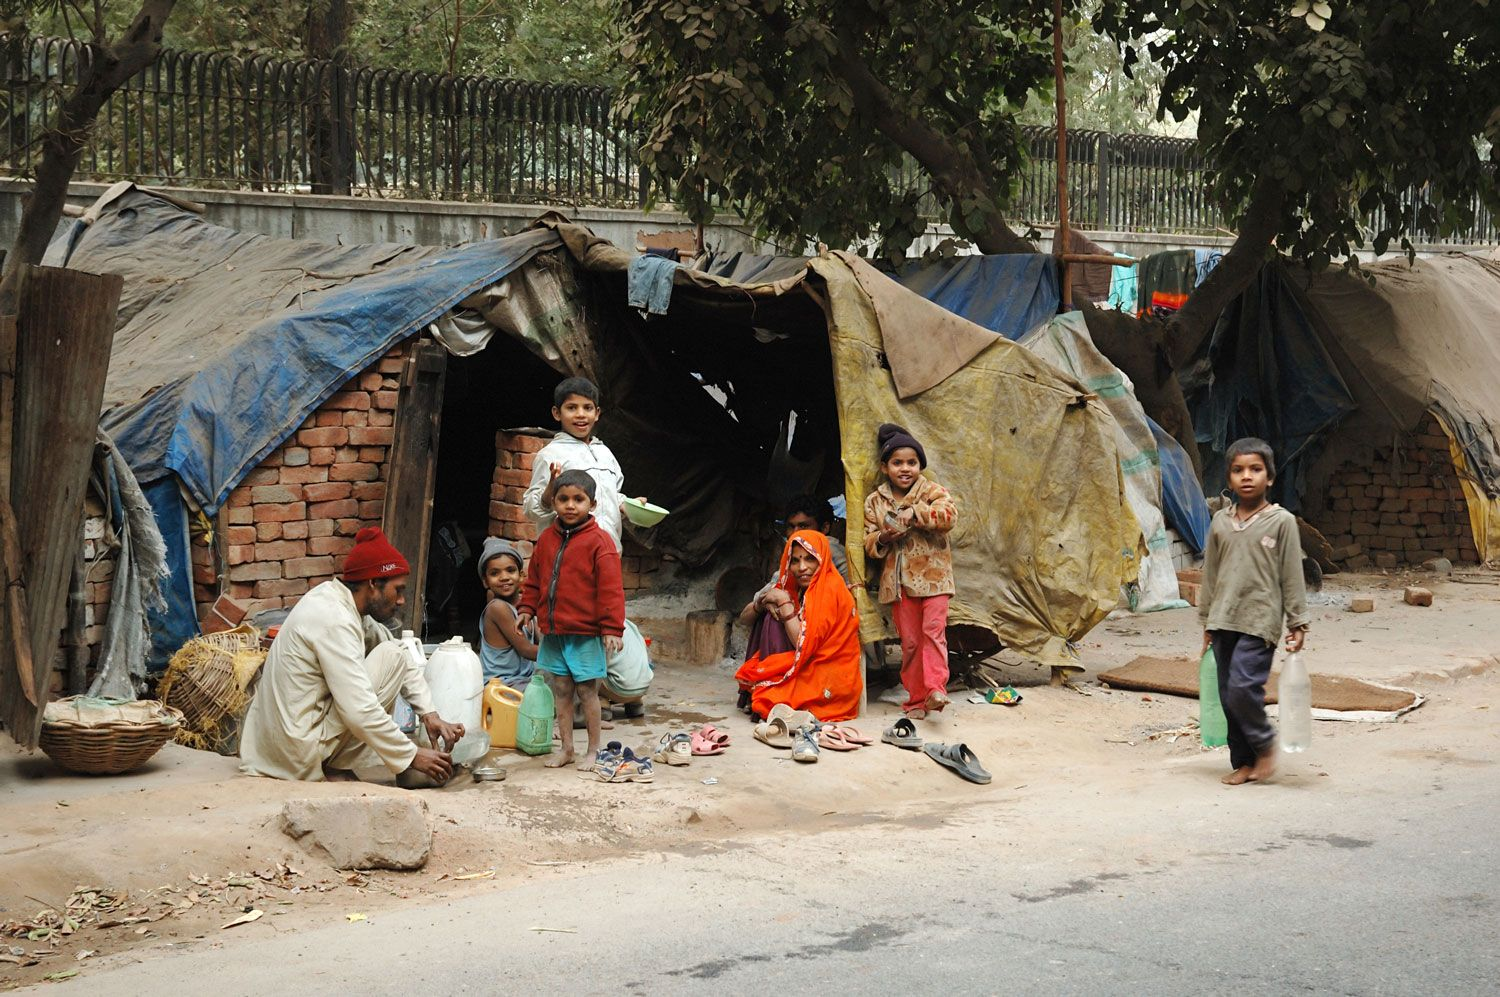 Living in poverty.